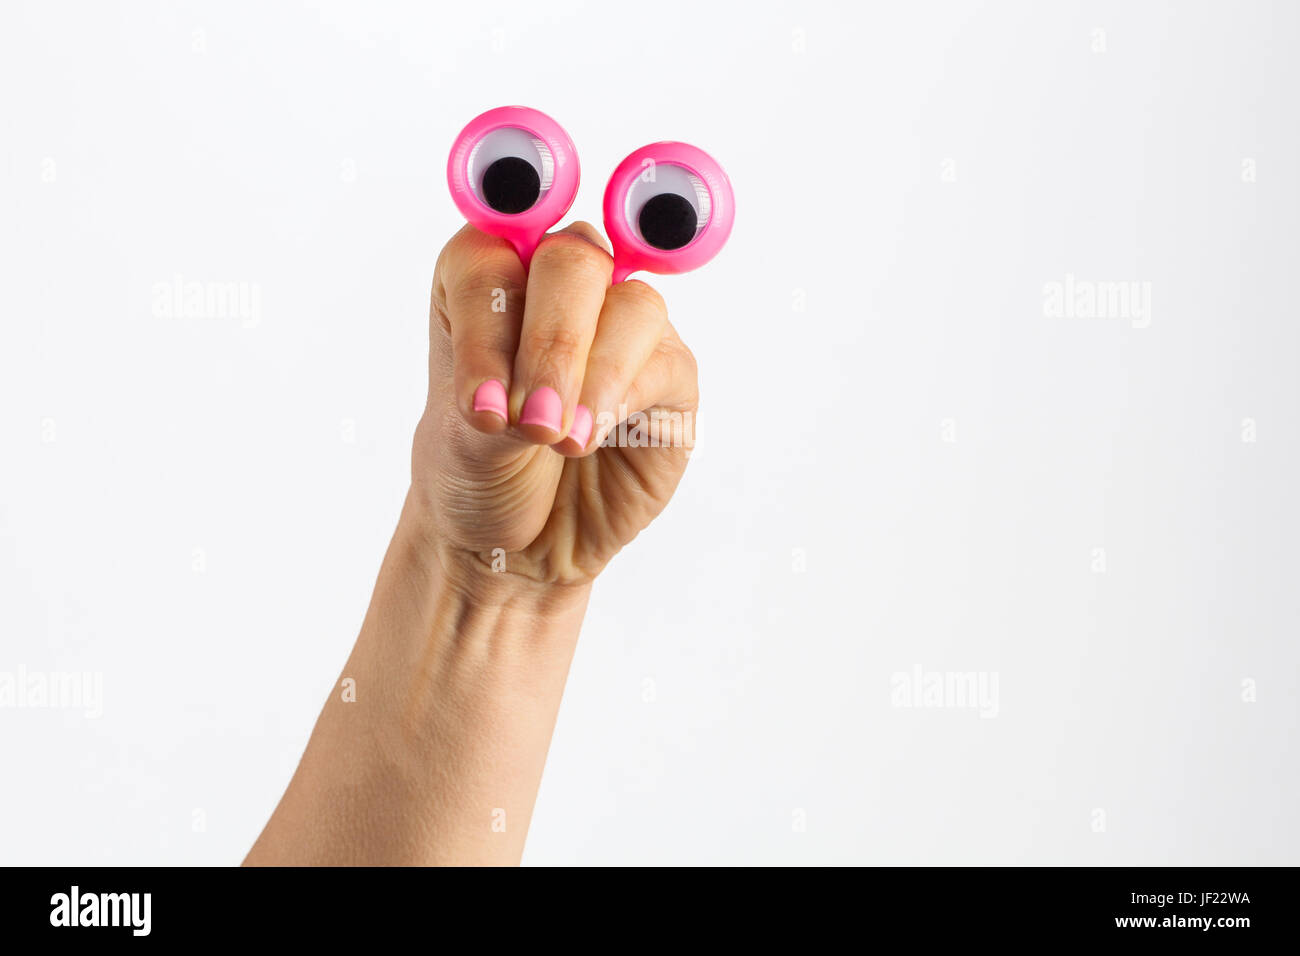 Funny character creature looking contemplating and thoughtful depicted with female hand and googly eyes. Isolated - Stock Image